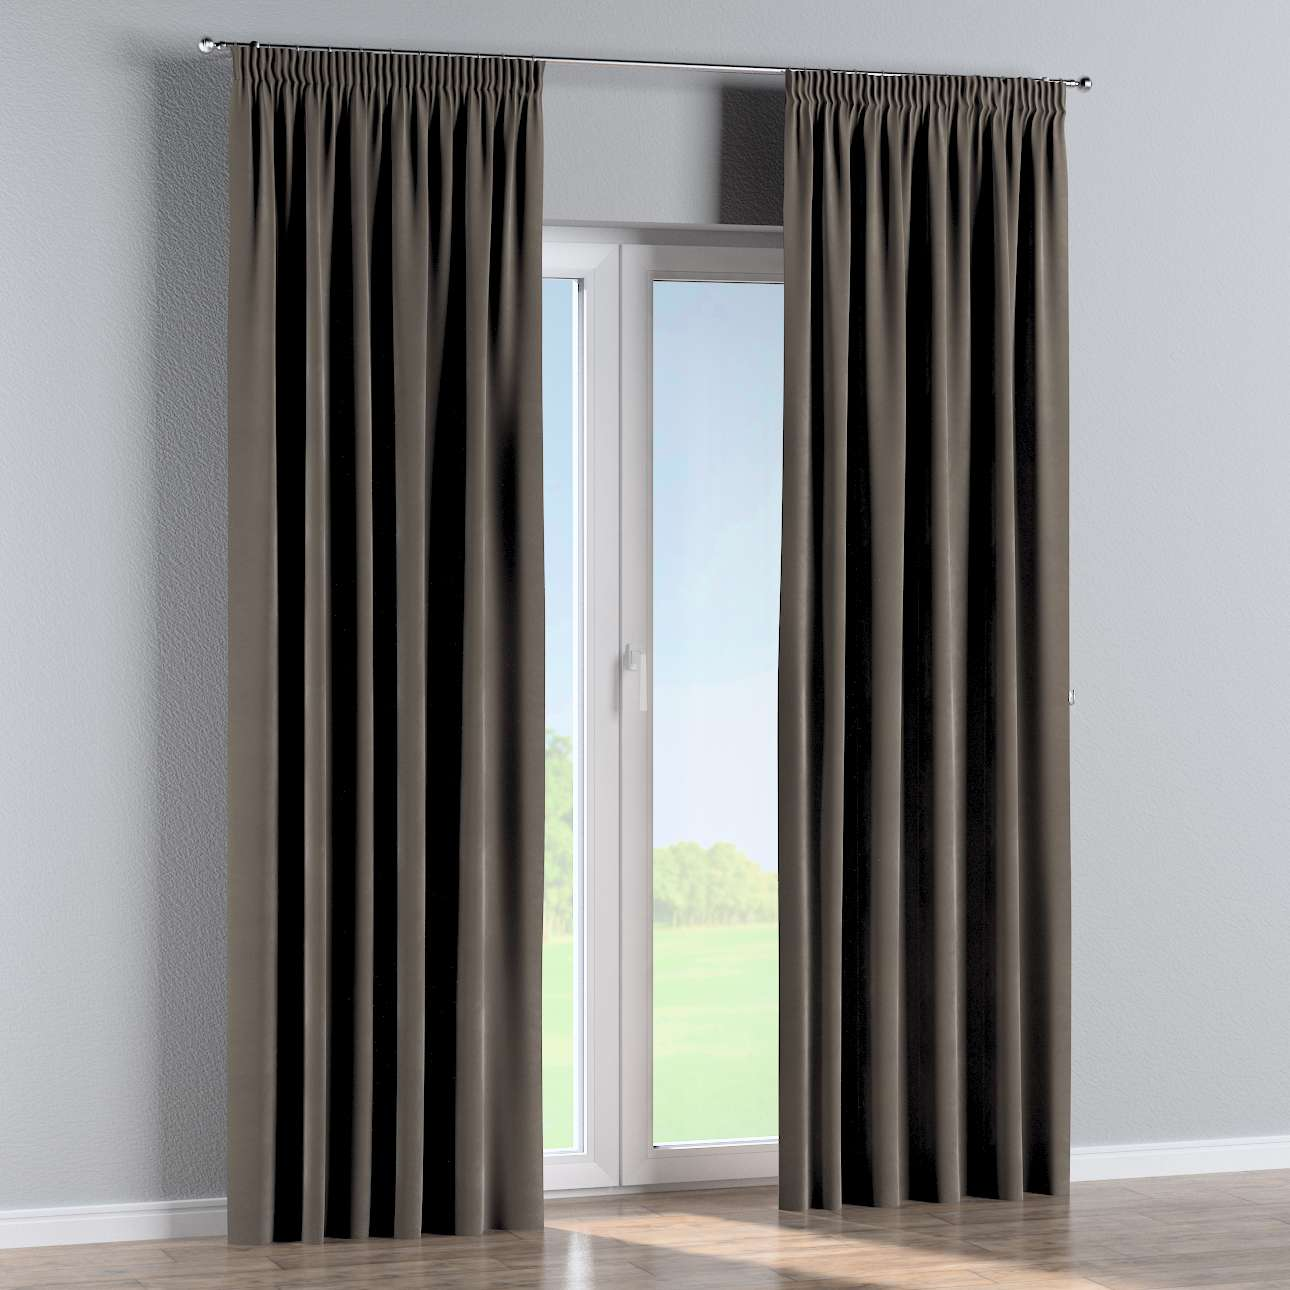 Pencil pleat curtains in collection Velvet, fabric: 704-19